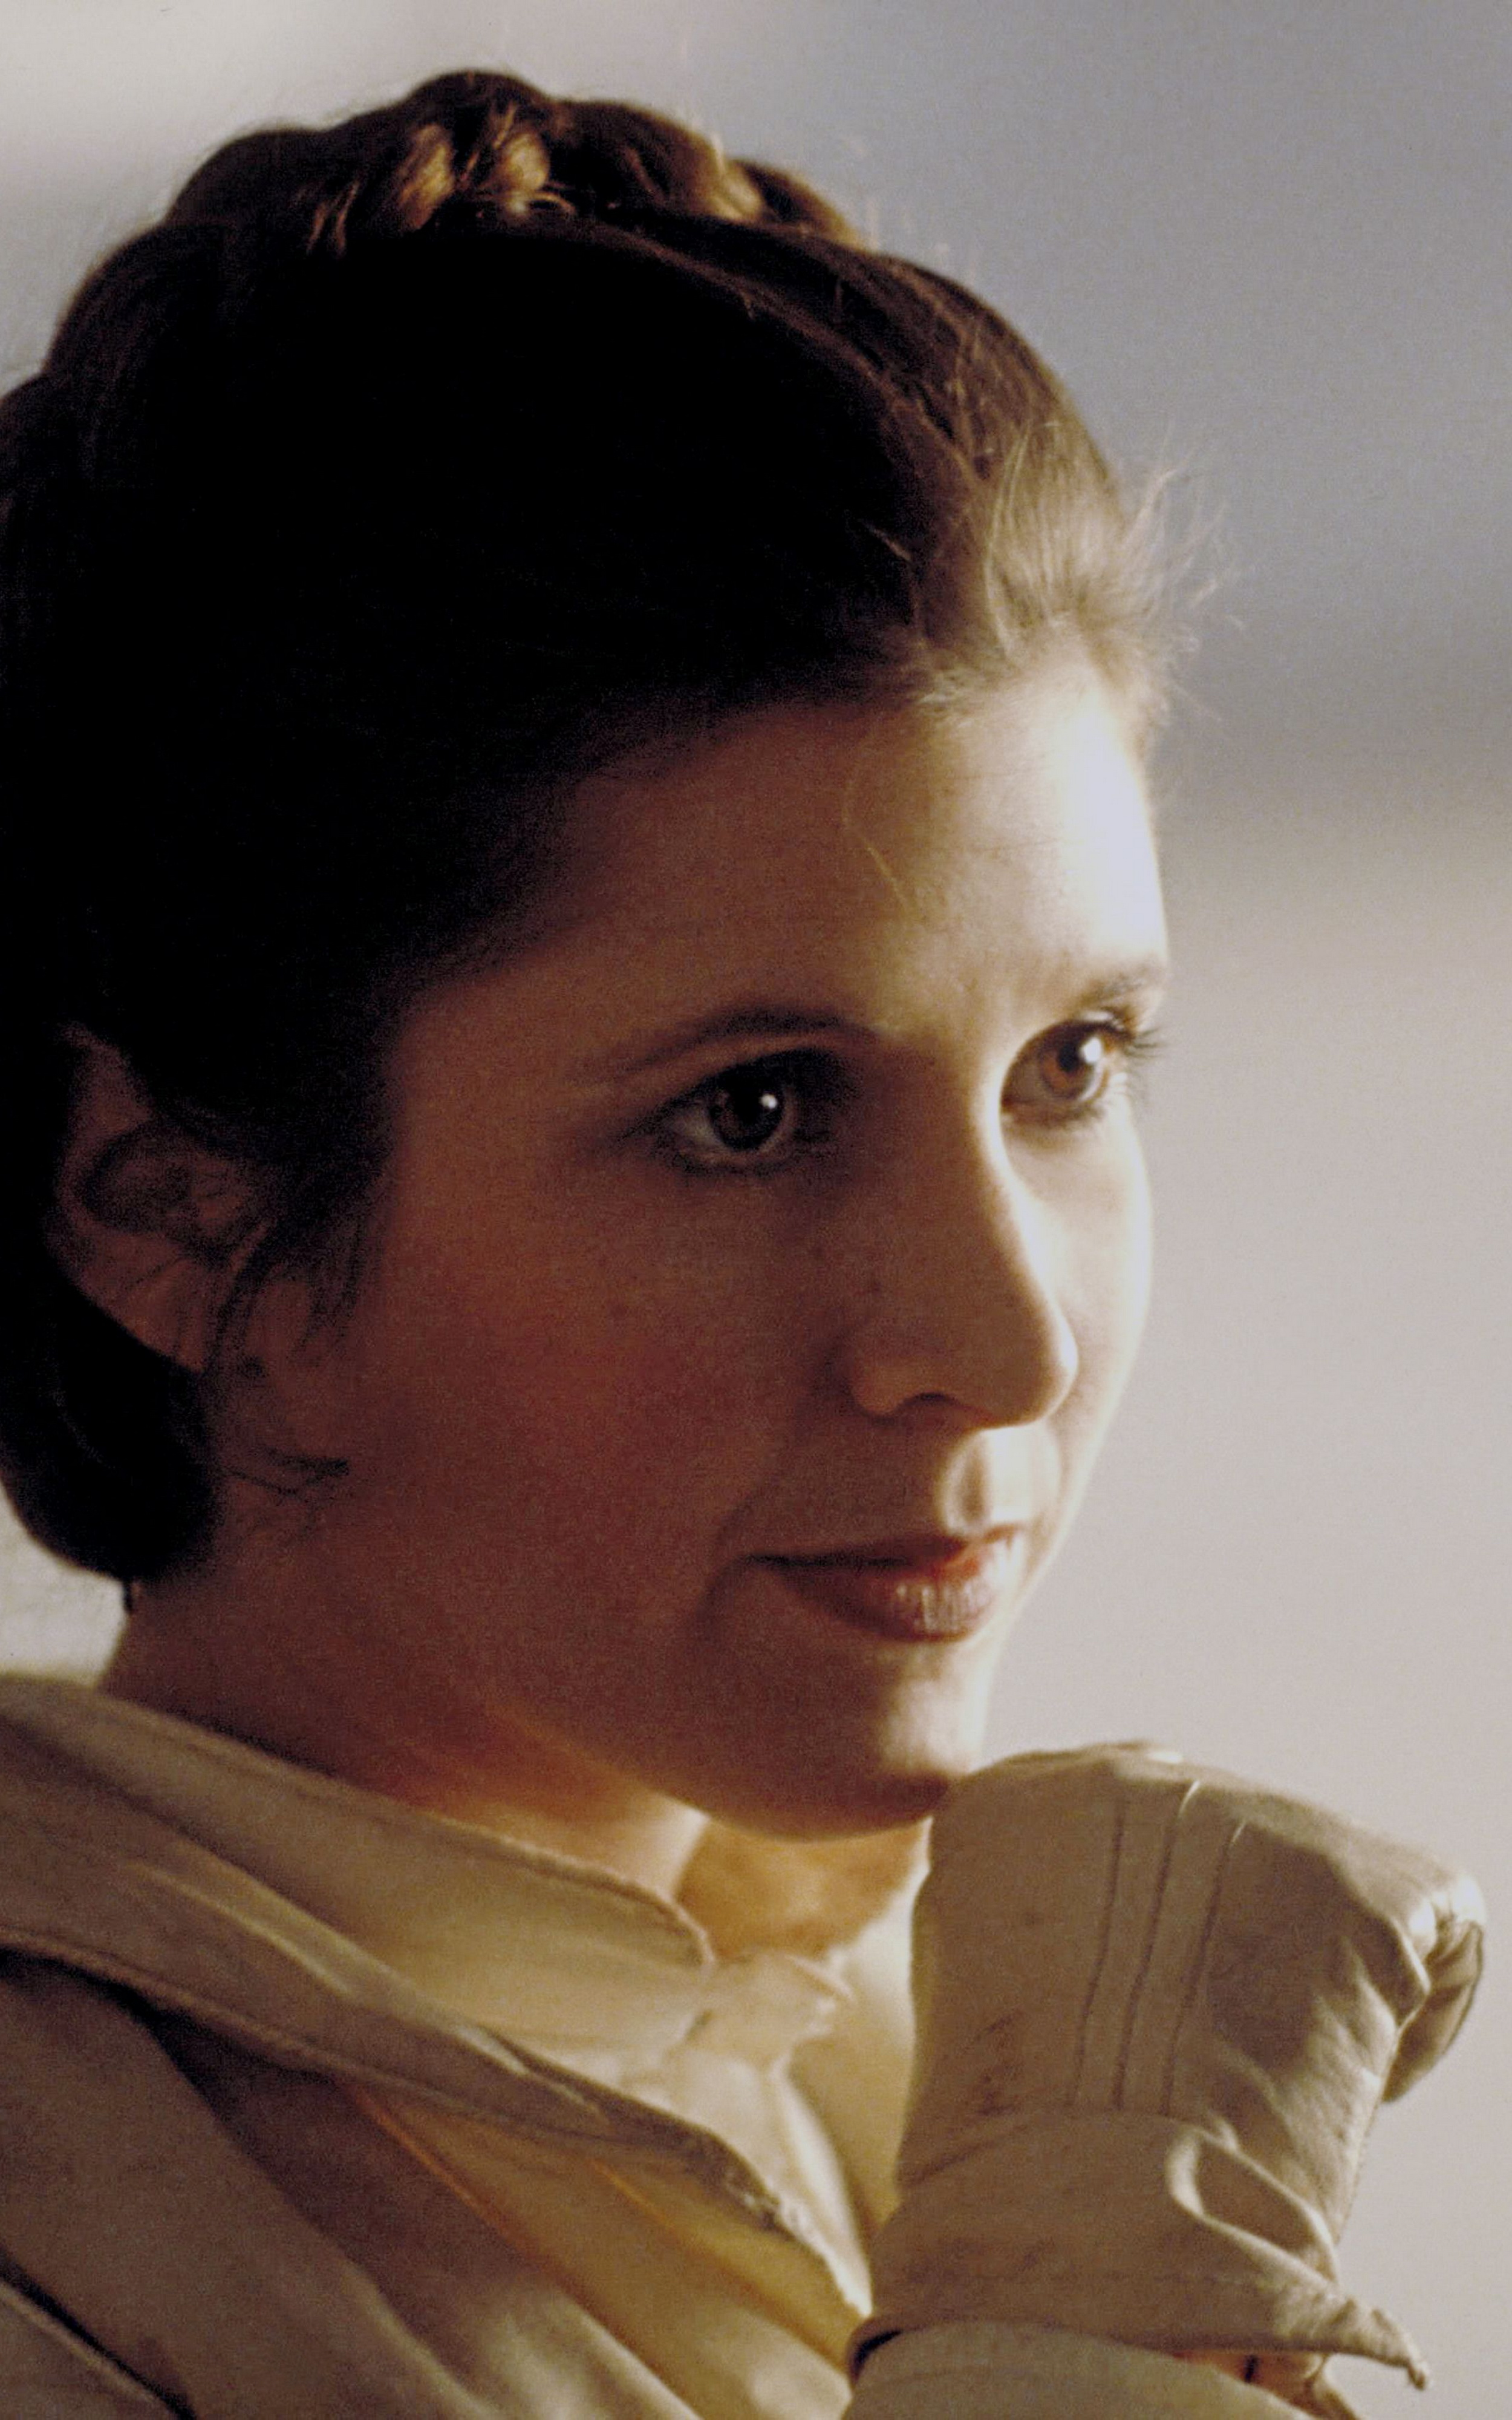 Princess Leia By Mike Mitchell Carrie Fisher 1055031 Hd Wallpaper Backgrounds Download